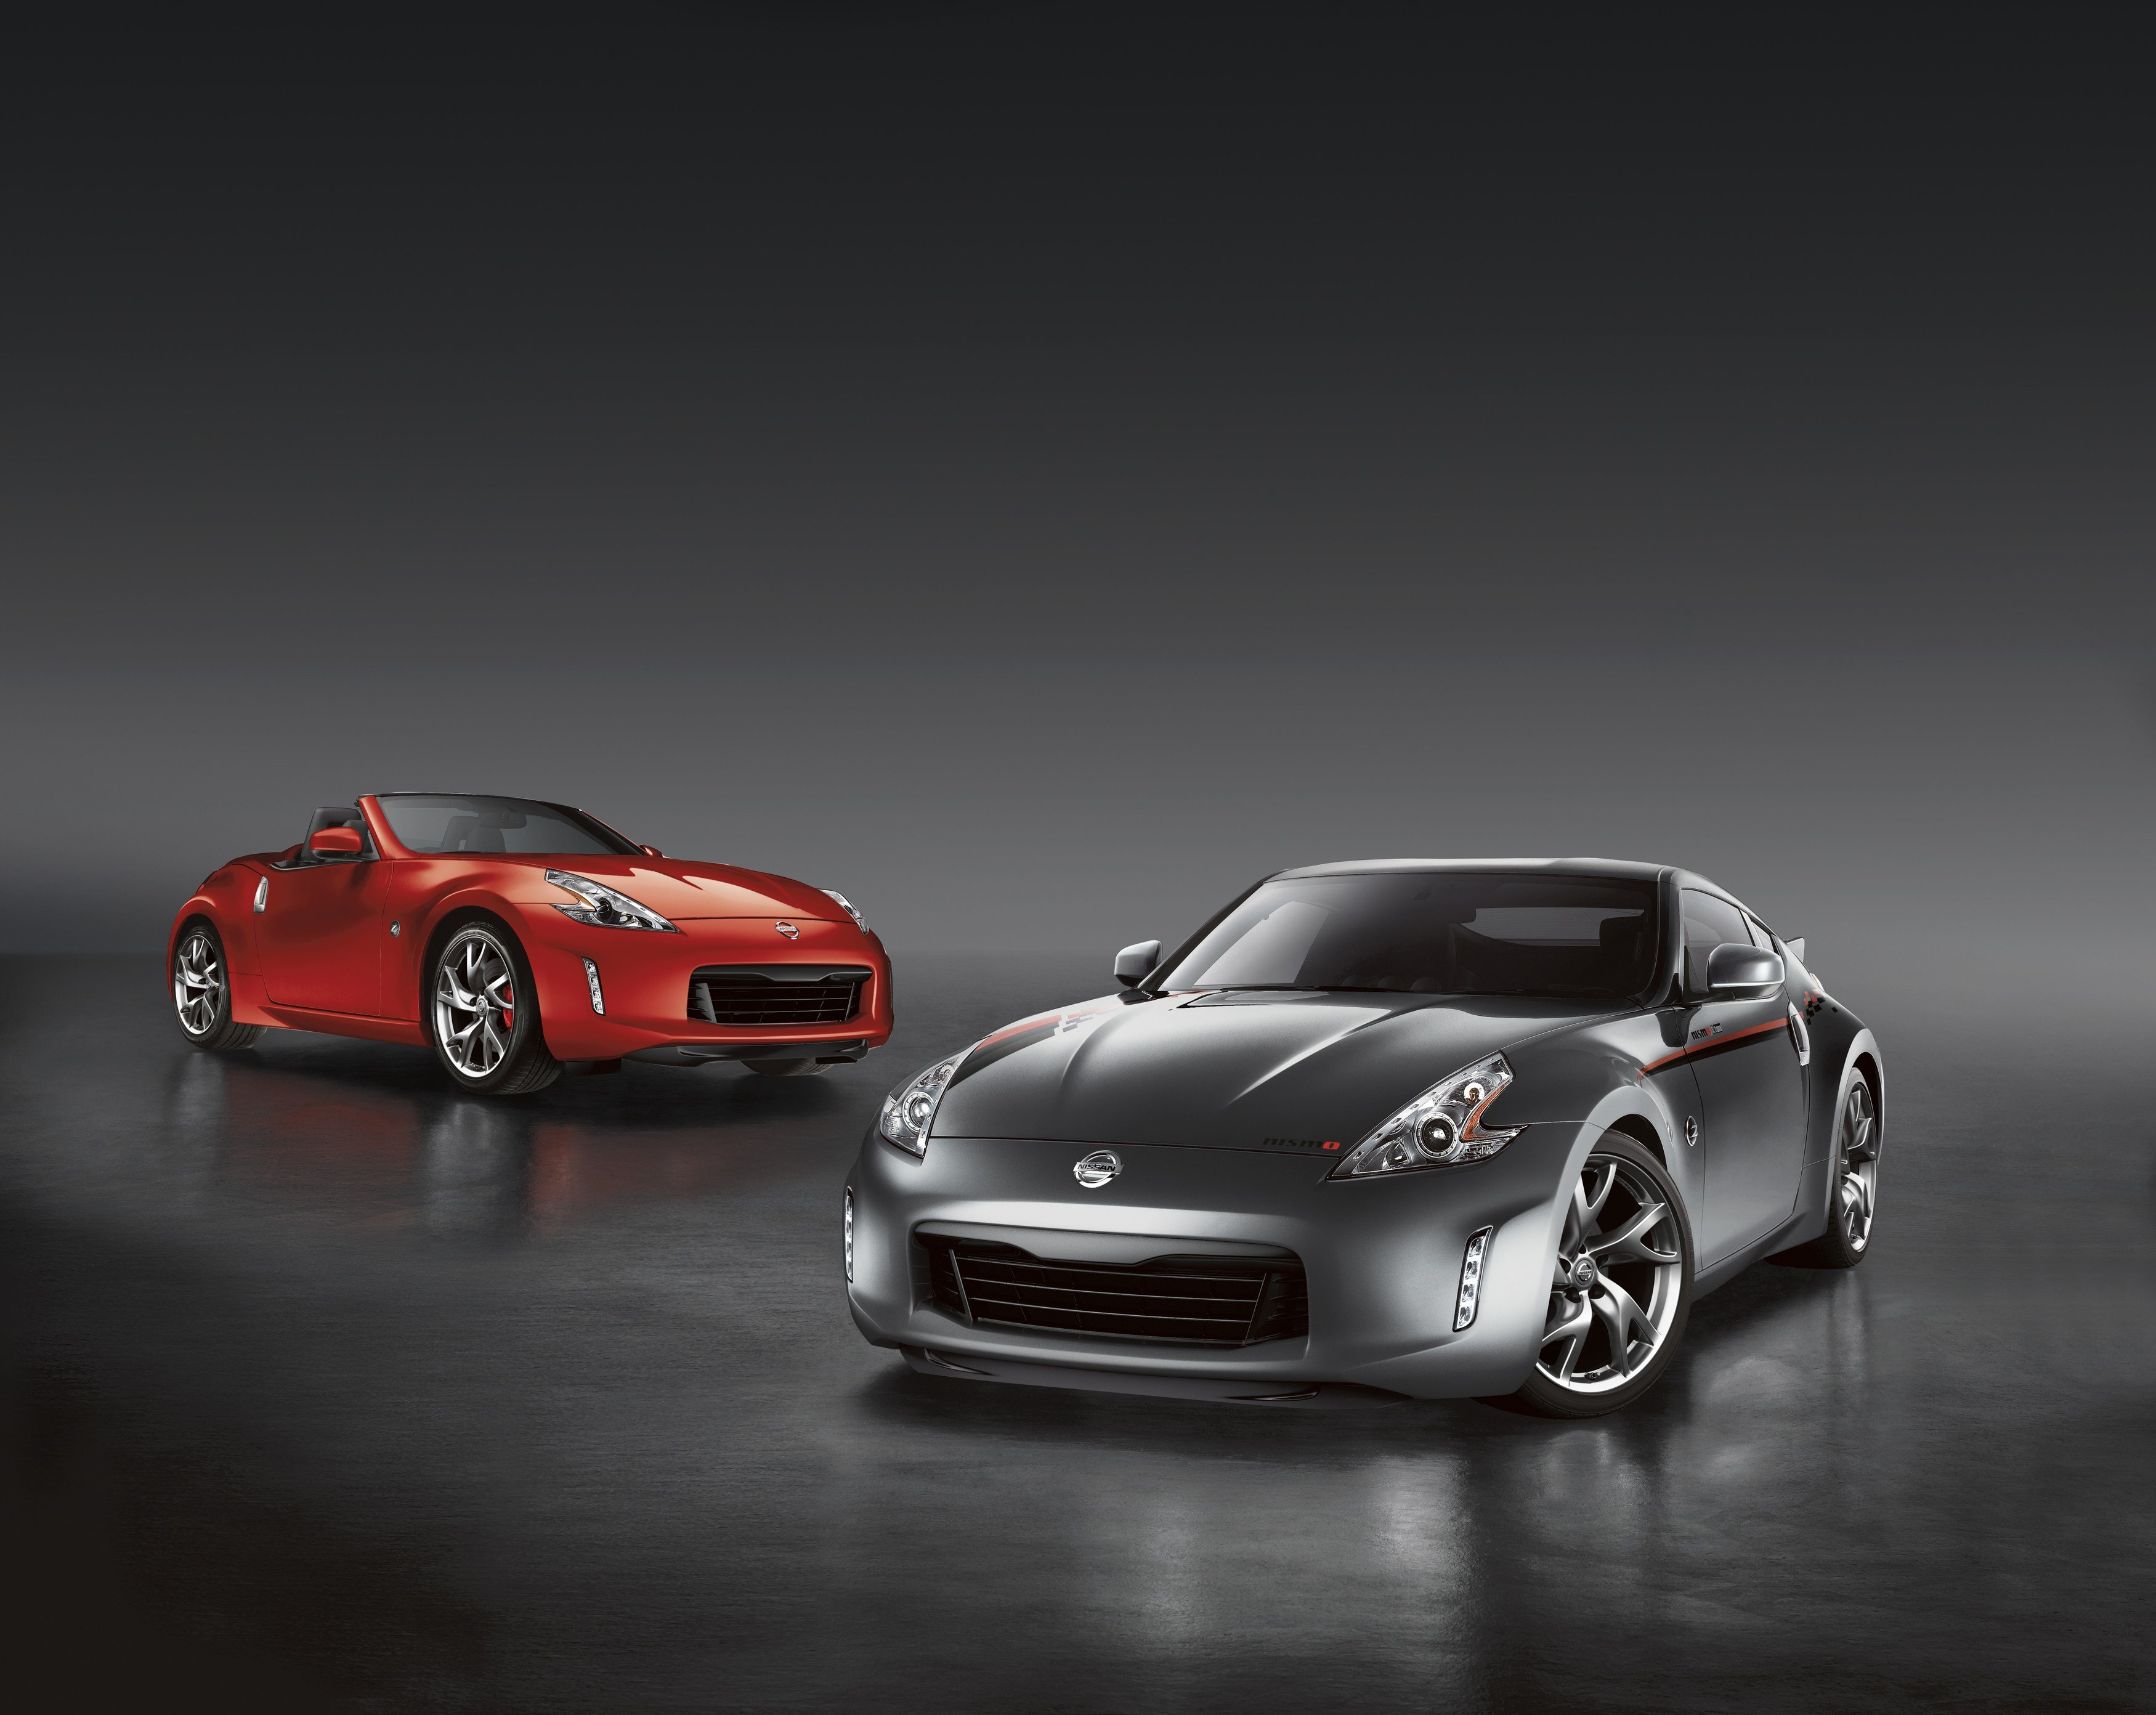 Latest Pricing For 2015 Nissan 370Z Coupe Nismo And Roadster Free Download